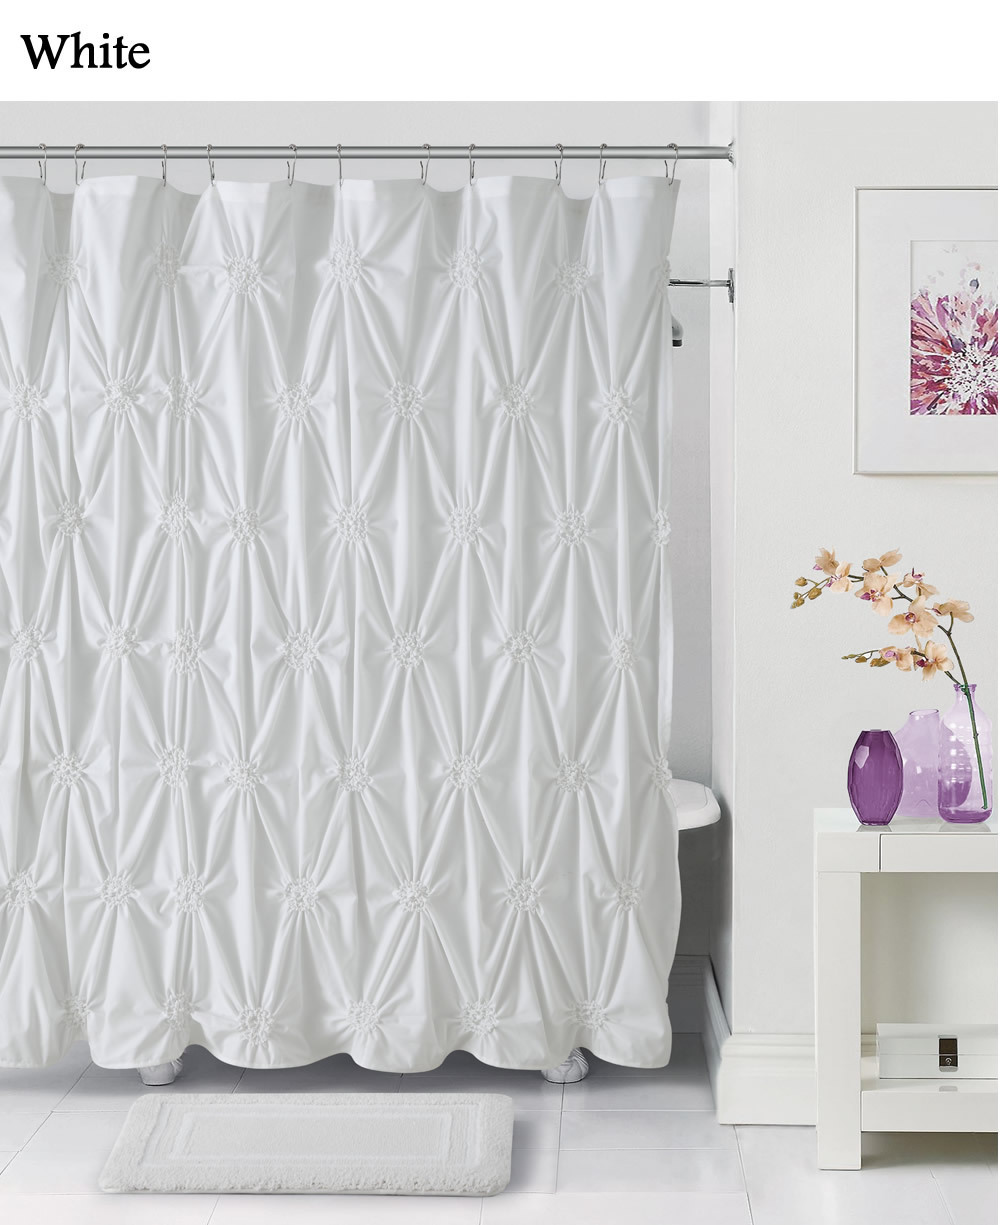 very consistent and shower curtain and bath mat set buyma cotton tufted chenille shower curtain amp bath mat set